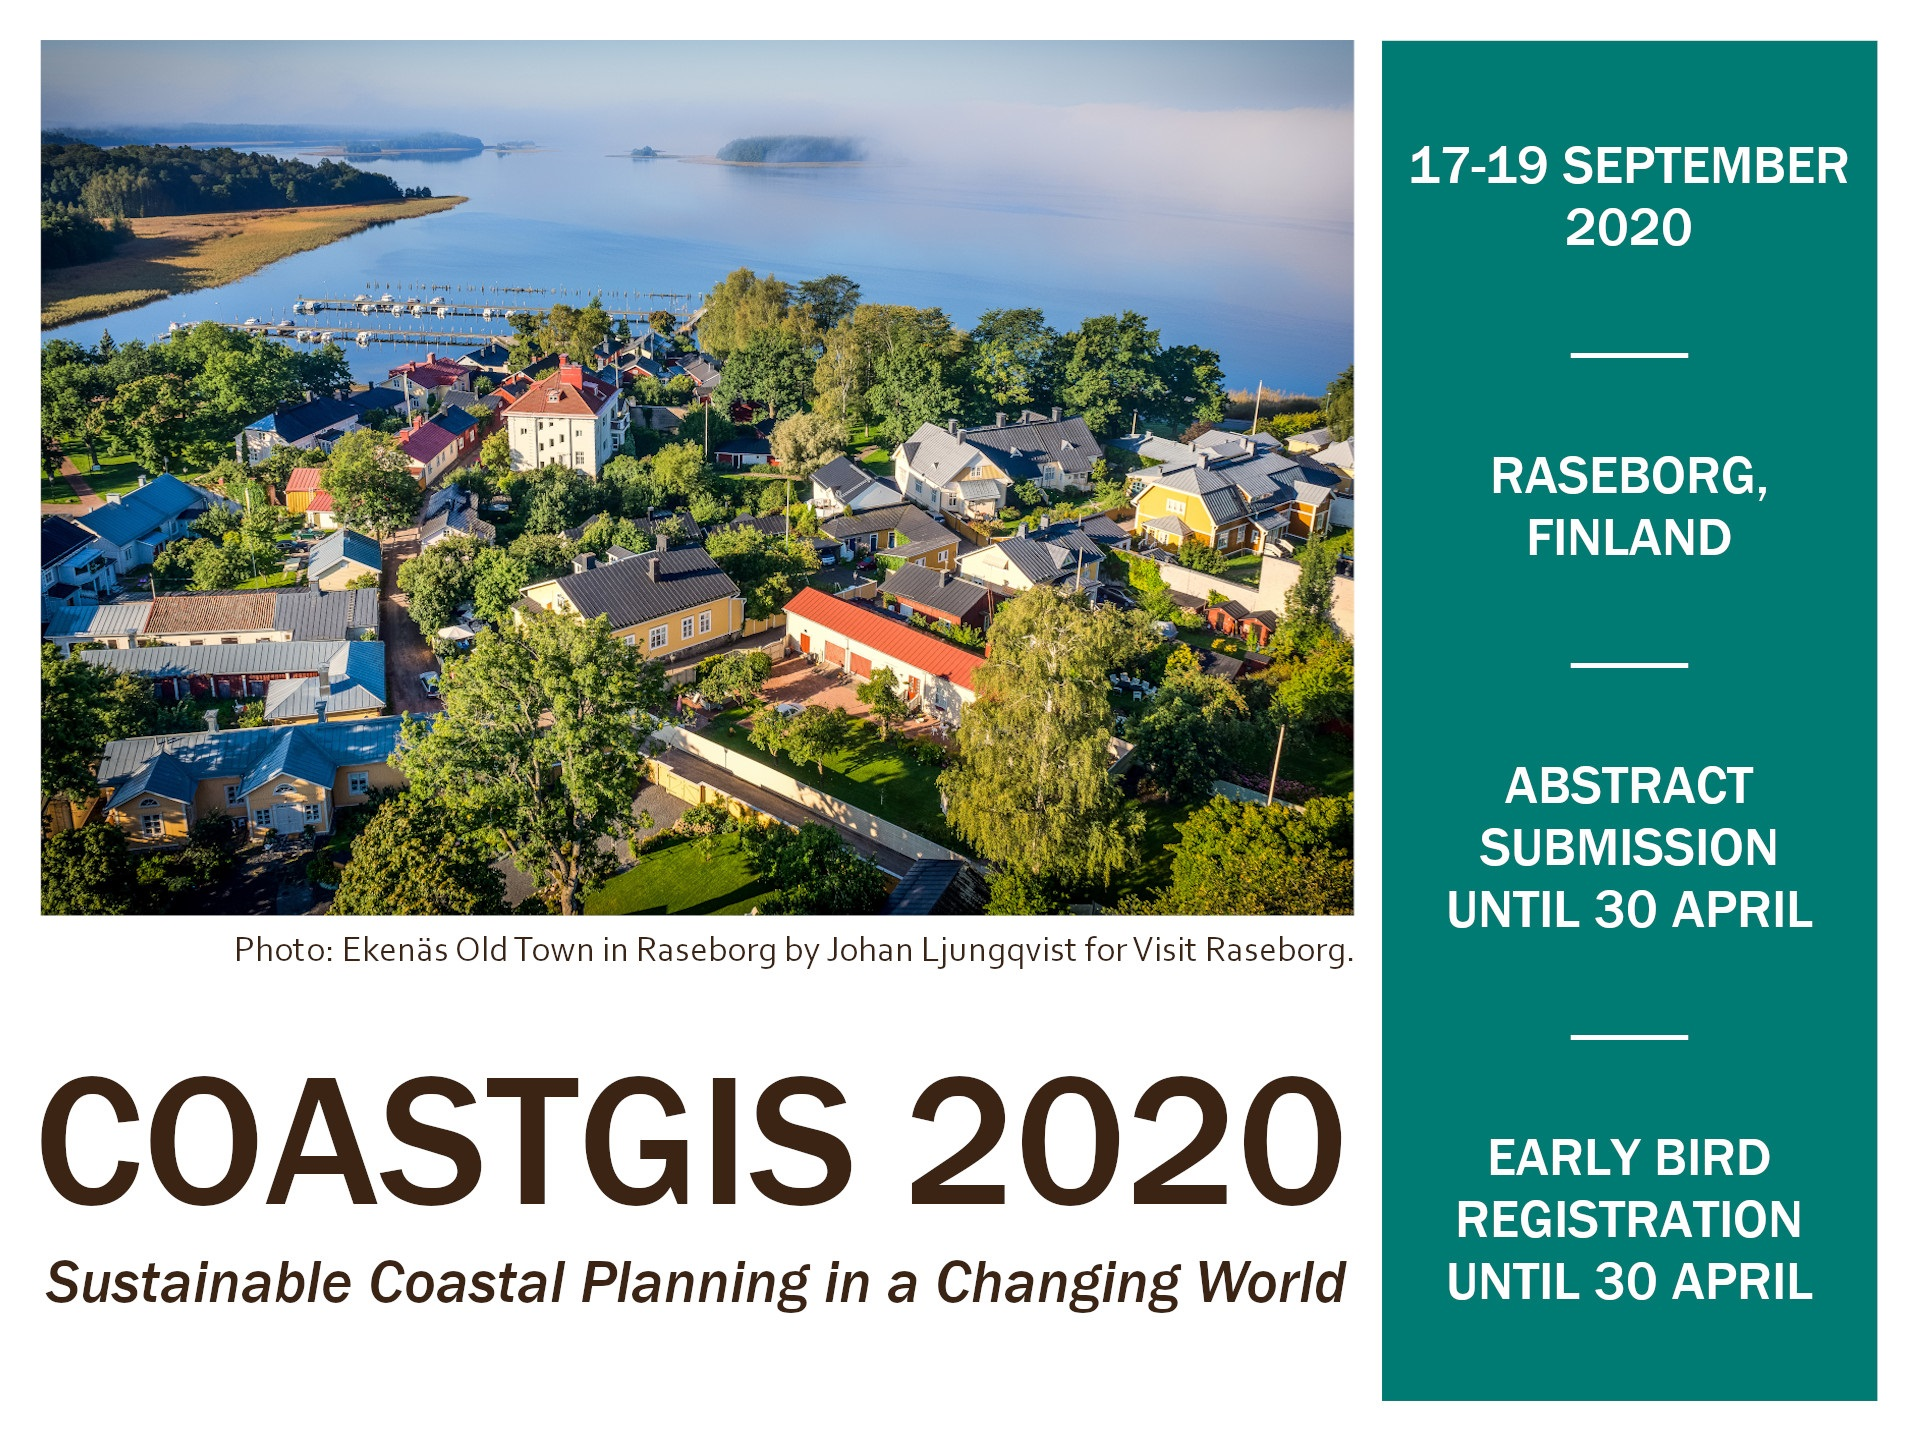 CoastGIS 2020 photo